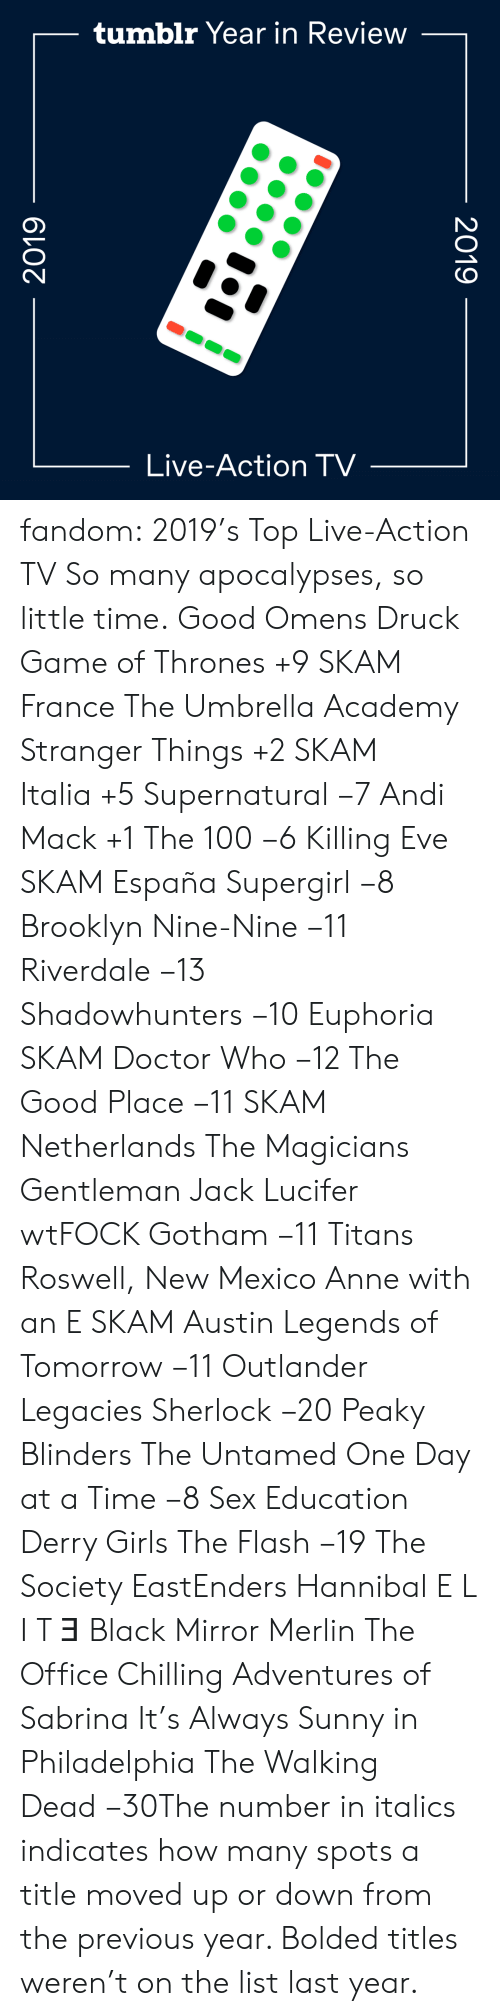 anne: tumblr Year in Review  Live-Action TV-  2019  2019 fandom:  2019's Top Live-Action TV  So many apocalypses, so little time.  Good Omens  Druck  Game of Thrones +9  SKAM France  The Umbrella Academy  Stranger Things +2  SKAM Italia +5  Supernatural −7  Andi Mack +1  The 100 −6  Killing Eve   SKAM España  Supergirl −8  Brooklyn Nine-Nine −11  Riverdale −13  Shadowhunters −10  Euphoria  SKAM  Doctor Who −12  The Good Place −11  SKAM Netherlands  The Magicians  Gentleman Jack  Lucifer  wtFOCK  Gotham −11  Titans  Roswell, New Mexico  Anne with an E  SKAM Austin  Legends of Tomorrow −11  Outlander  Legacies  Sherlock −20  Peaky Blinders  The Untamed  One Day at a Time −8  Sex Education  Derry Girls  The Flash −19  The Society  EastEnders  Hannibal  E L I T Ǝ  Black Mirror  Merlin  The Office  Chilling Adventures of Sabrina  It's Always Sunny in Philadelphia The Walking Dead −30The number in italics indicates how many spots a title moved up or down from the previous year. Bolded titles weren't on the list last year.